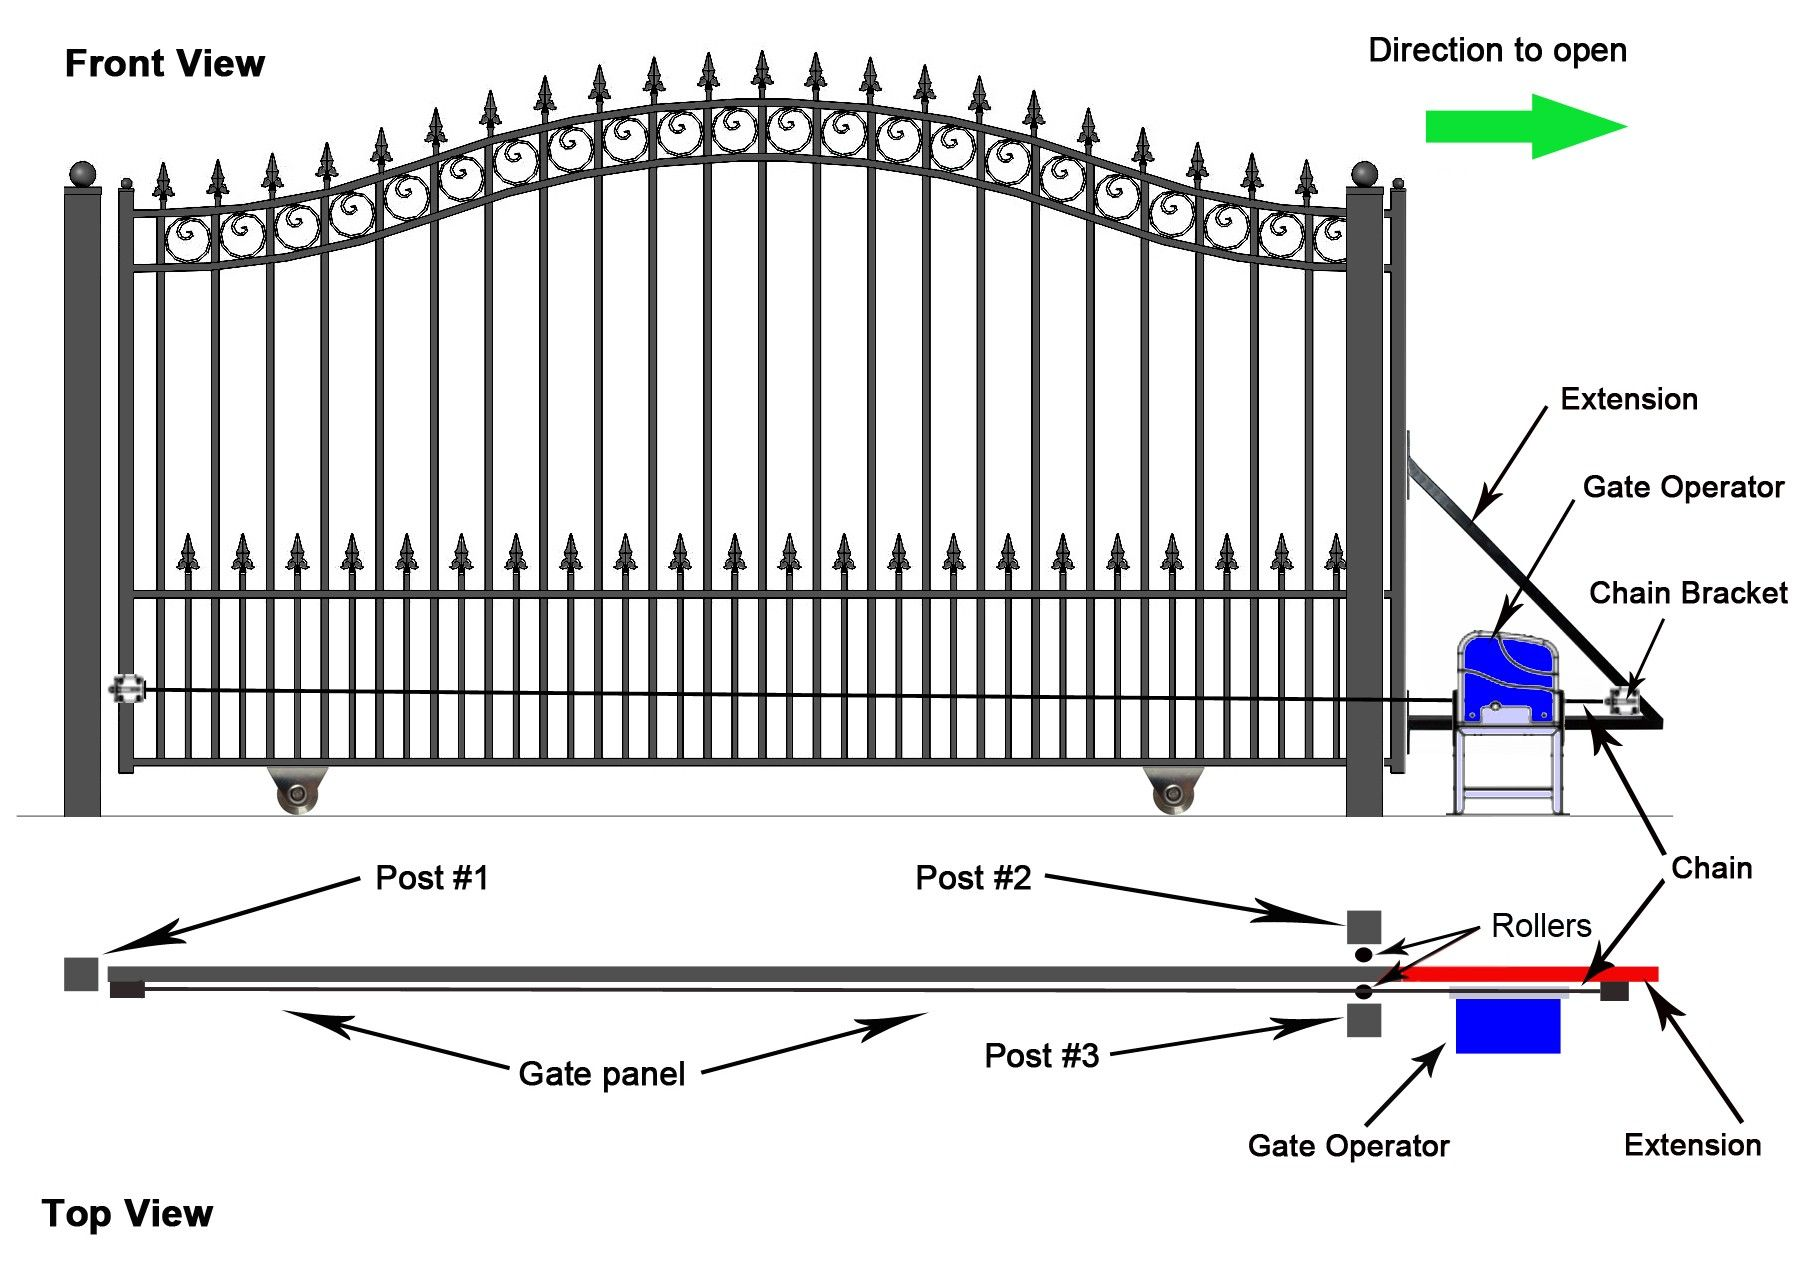 Wiring Diagram for Auto GatePinterest